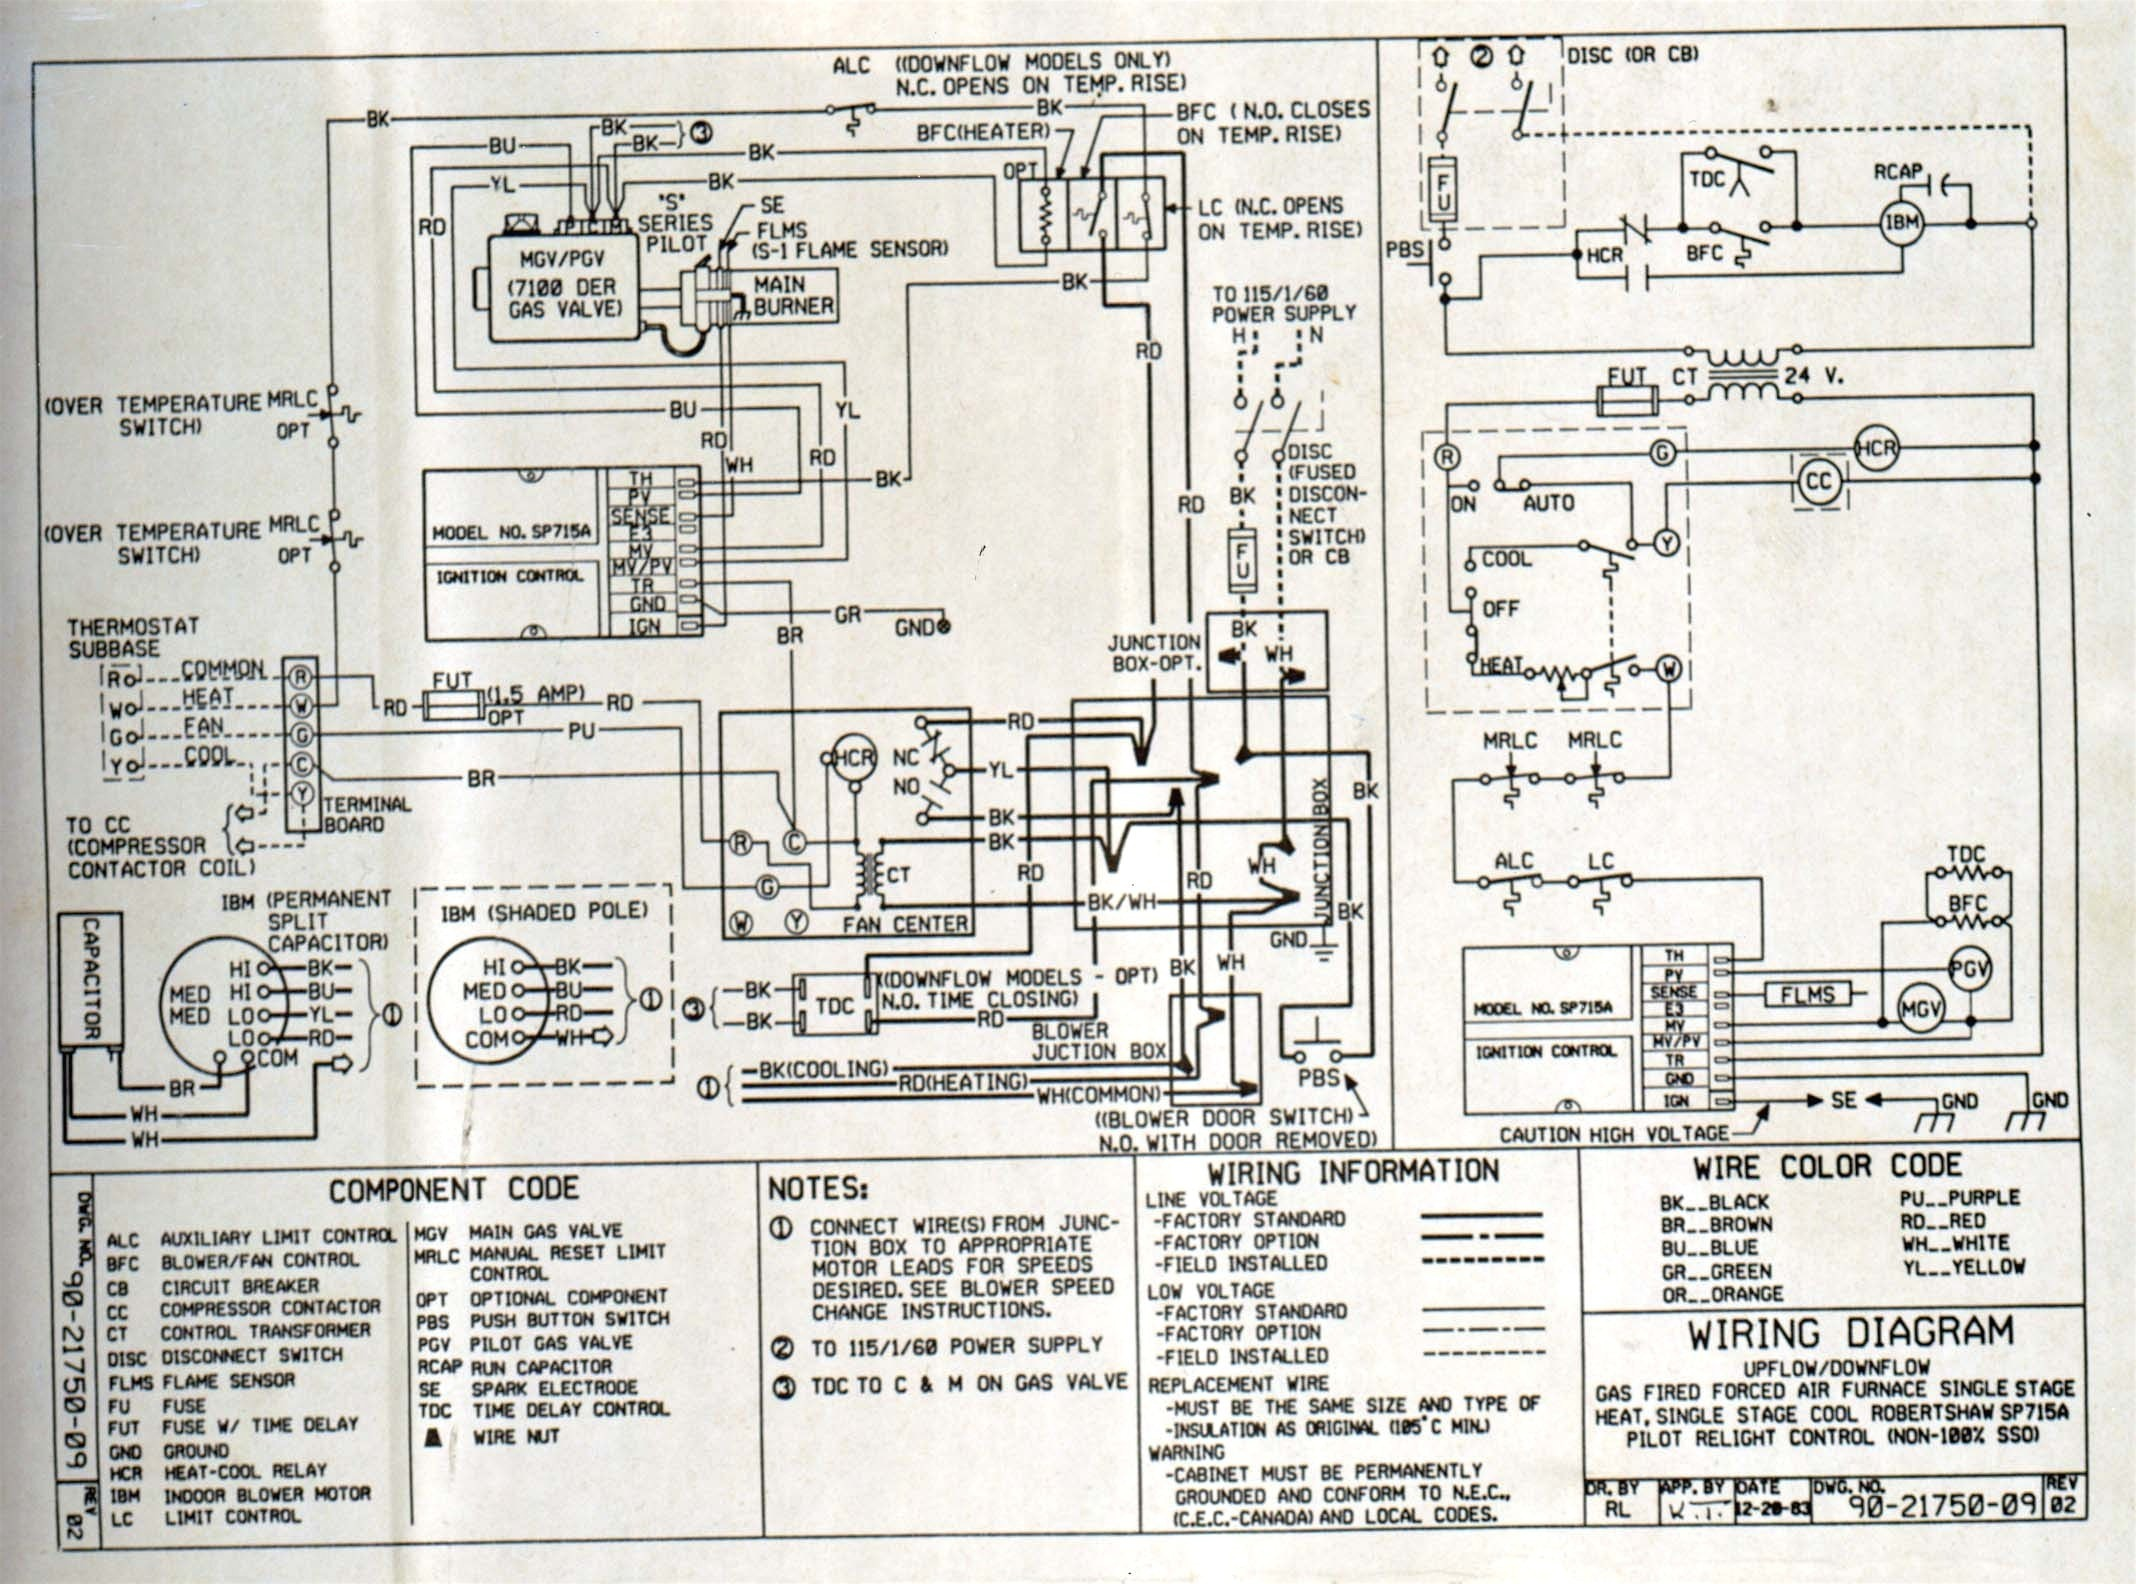 Armstrong Furnace Parts Diagram Electric Furnace Wiring Diagrams Detailed Schematic Diagrams Of Armstrong Furnace Parts Diagram